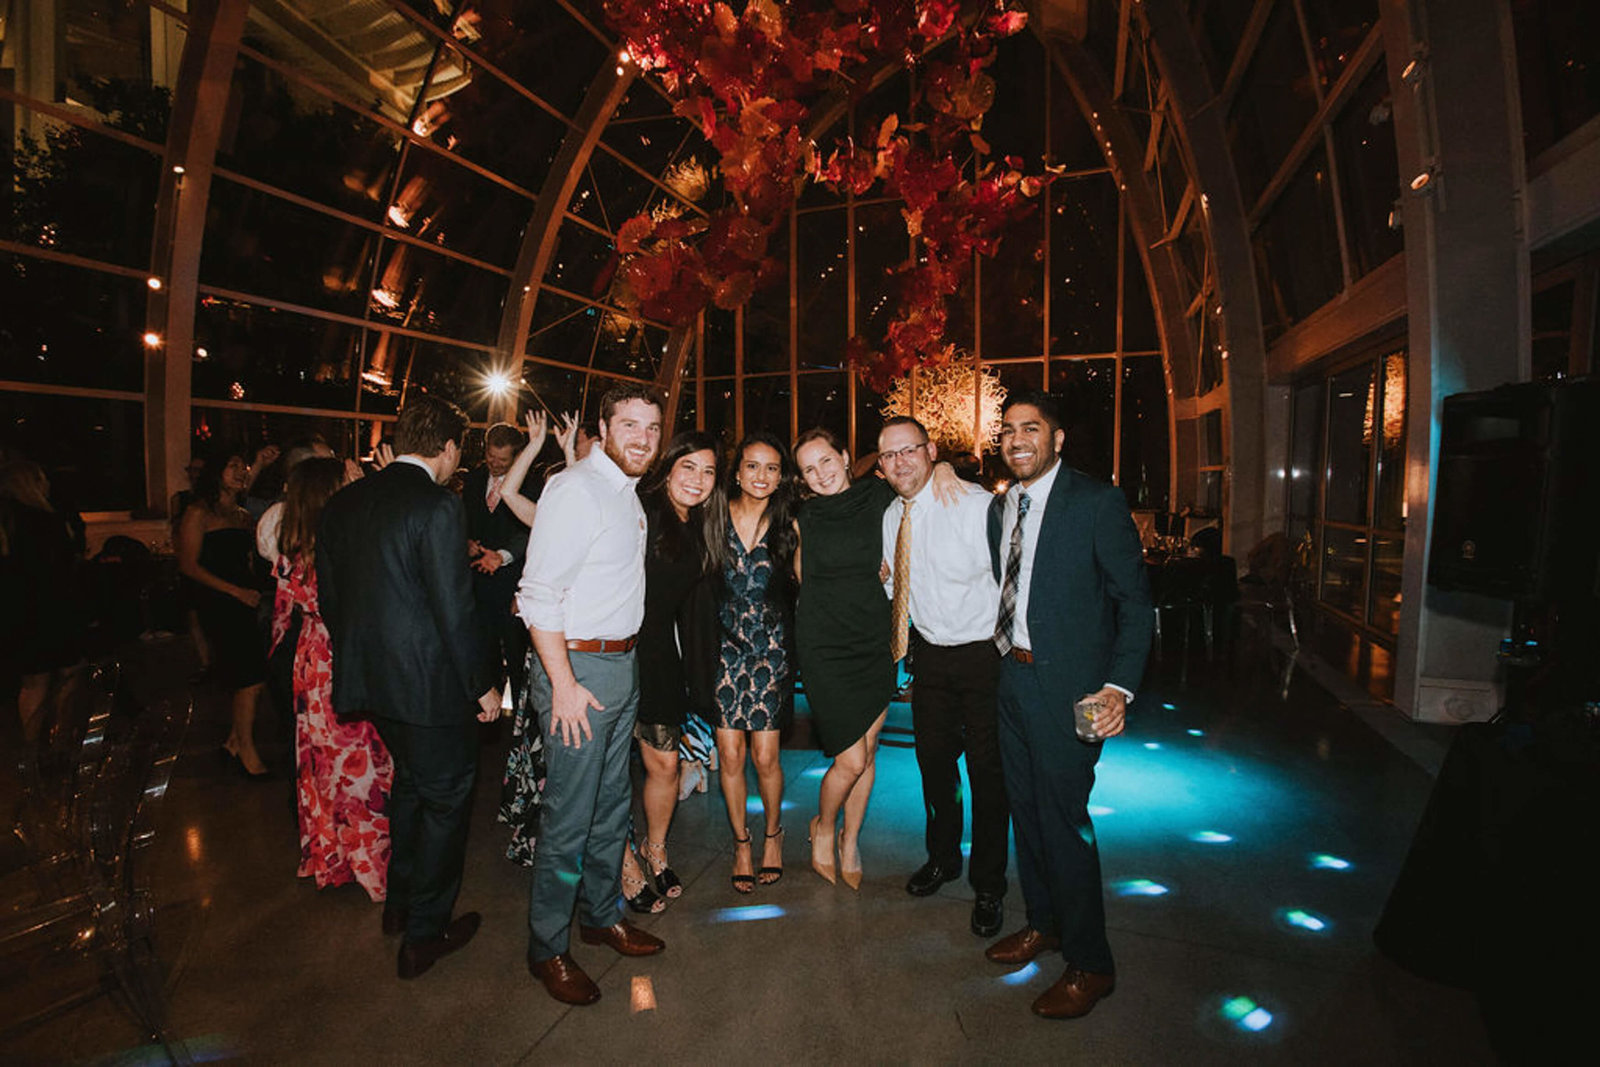 chihuly-garden-and-glass-wedding-sharel-eric-by-Adina-Preston-Photography-2019-454